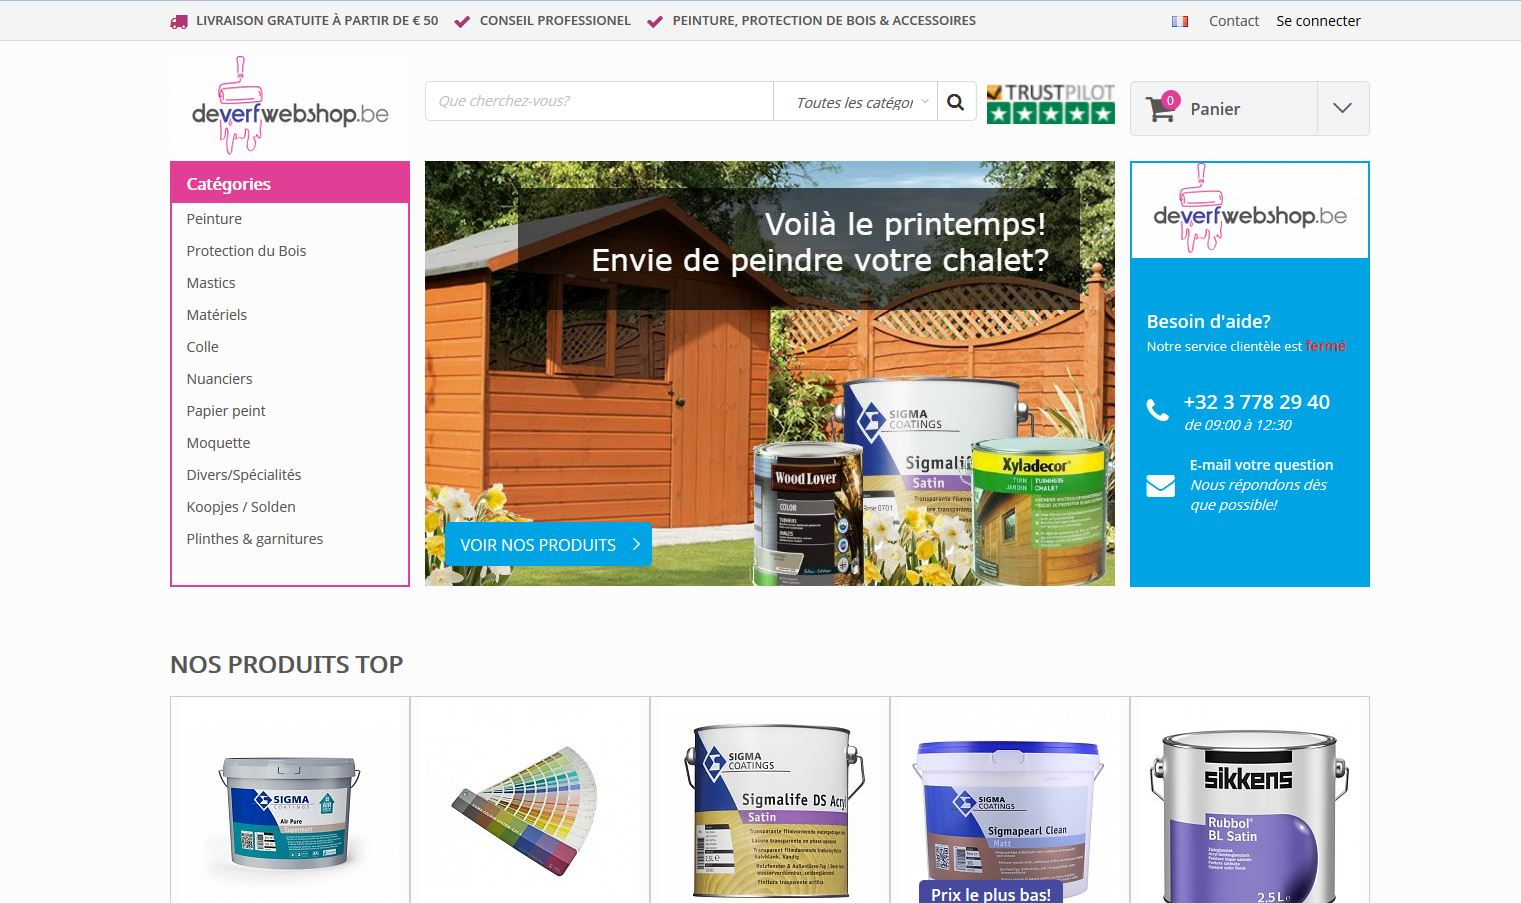 Le site flamand deverfwebshop.be arrive en France